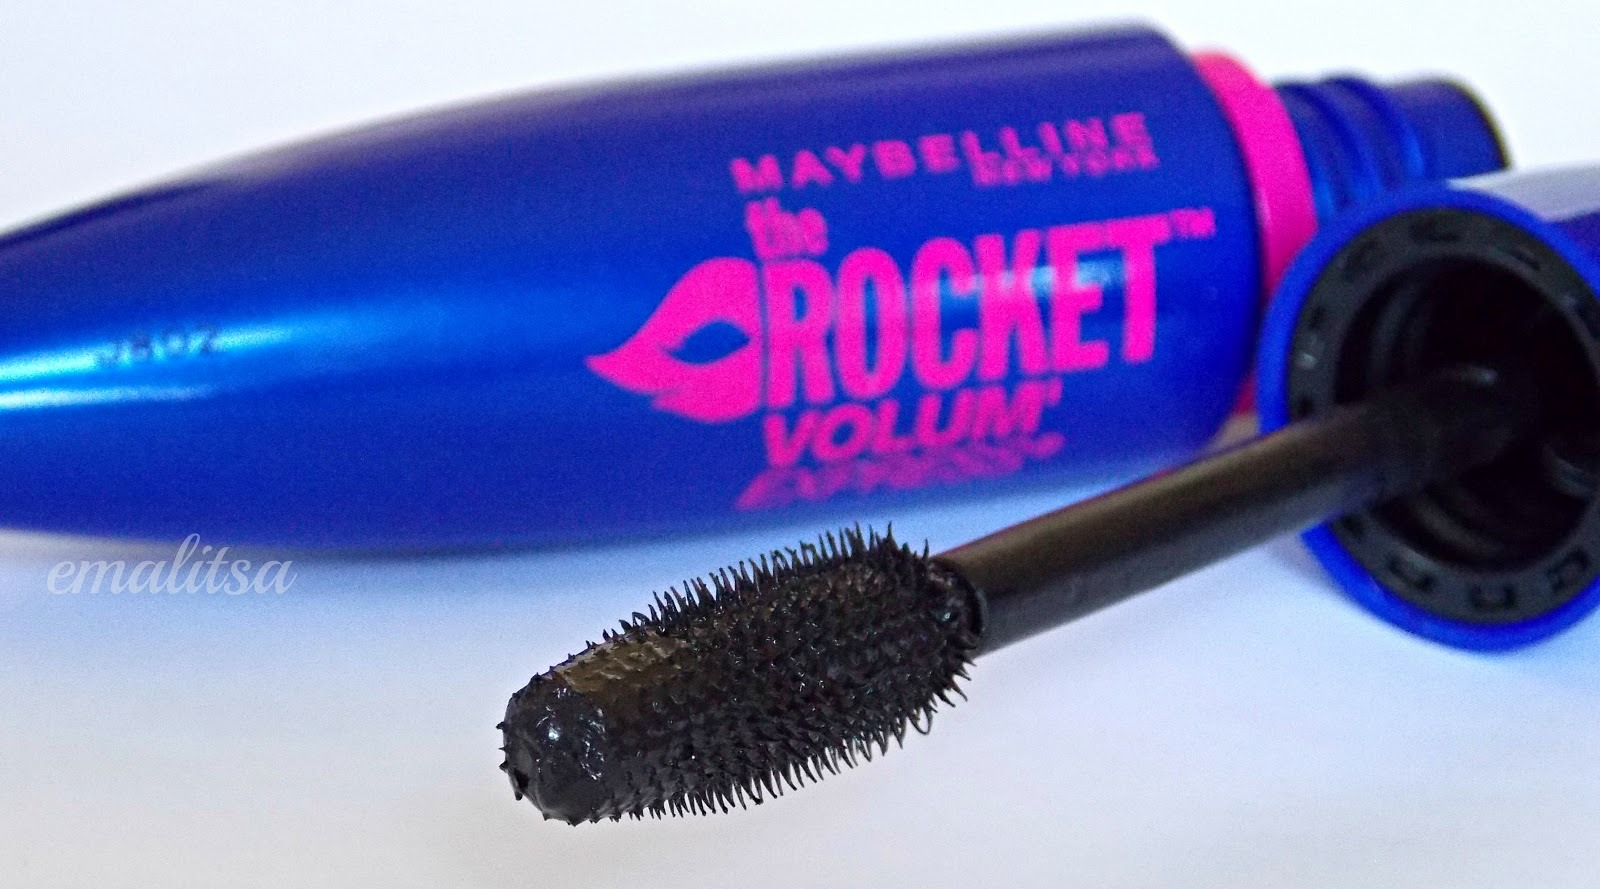 2- after apply a mascara who is going to separate the eyelashes